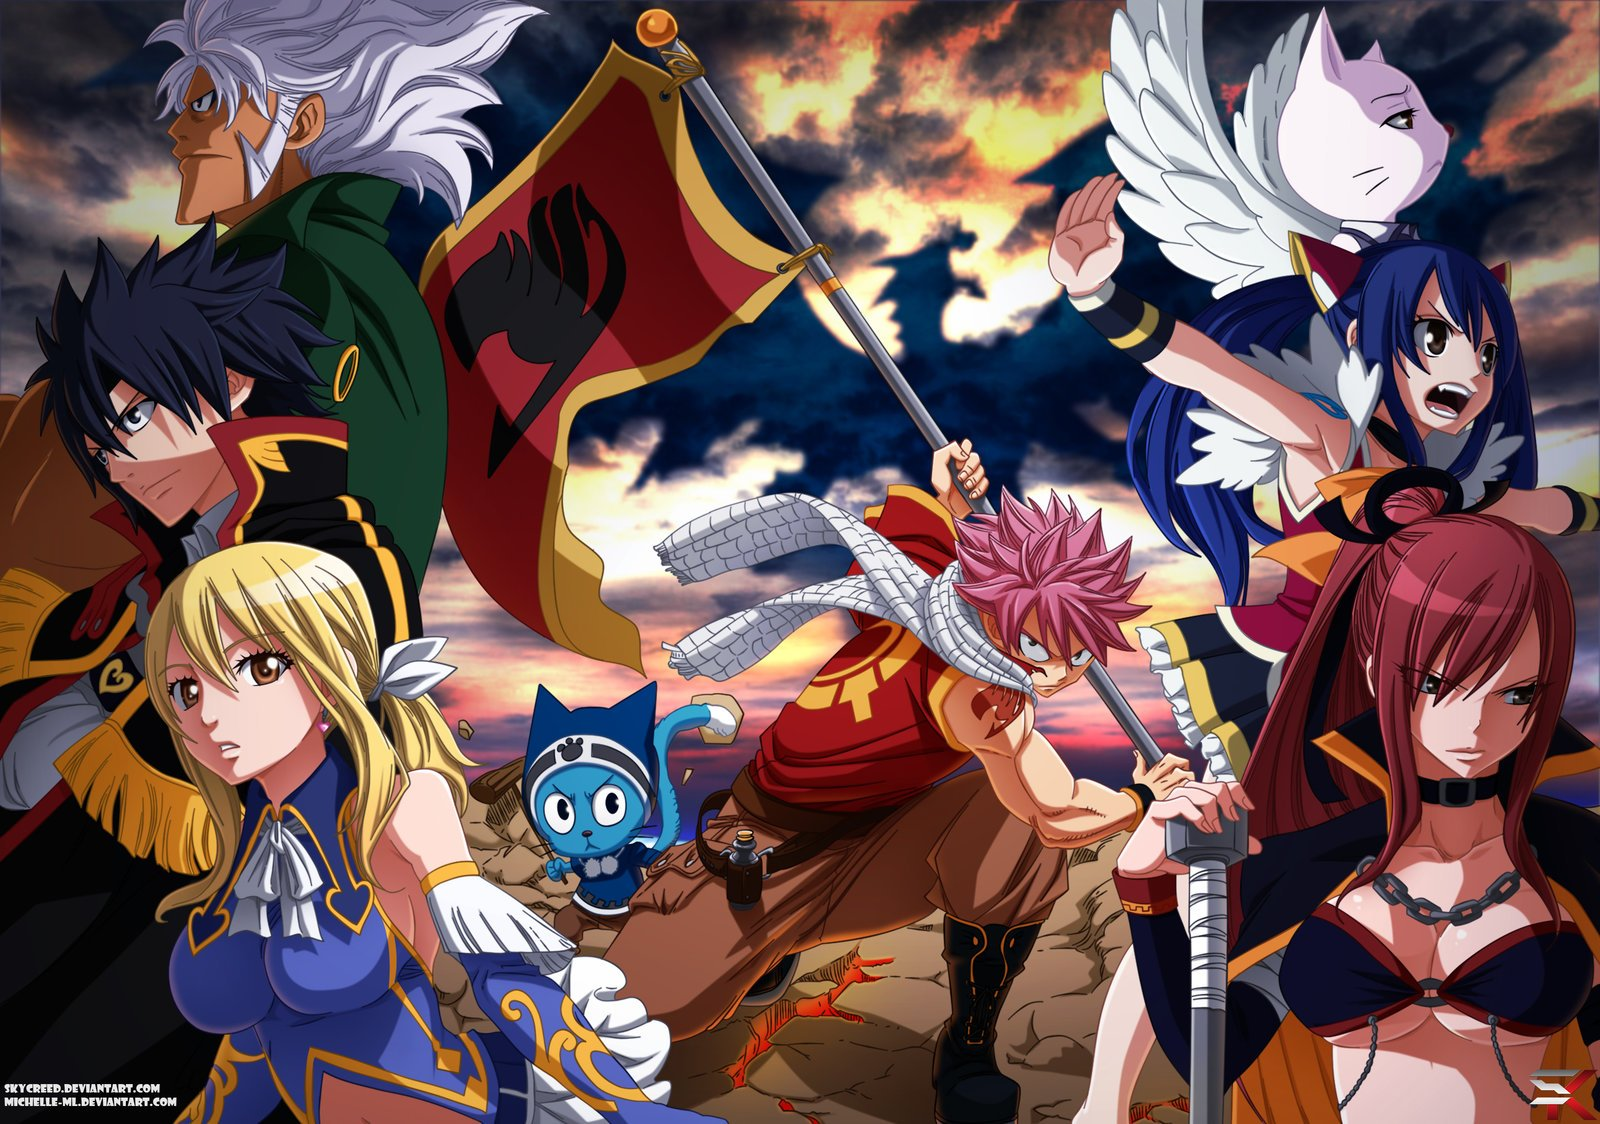 Anime series fairy tail characters lucy heartfilia erza scarlet natsu dragneel gray magic ...